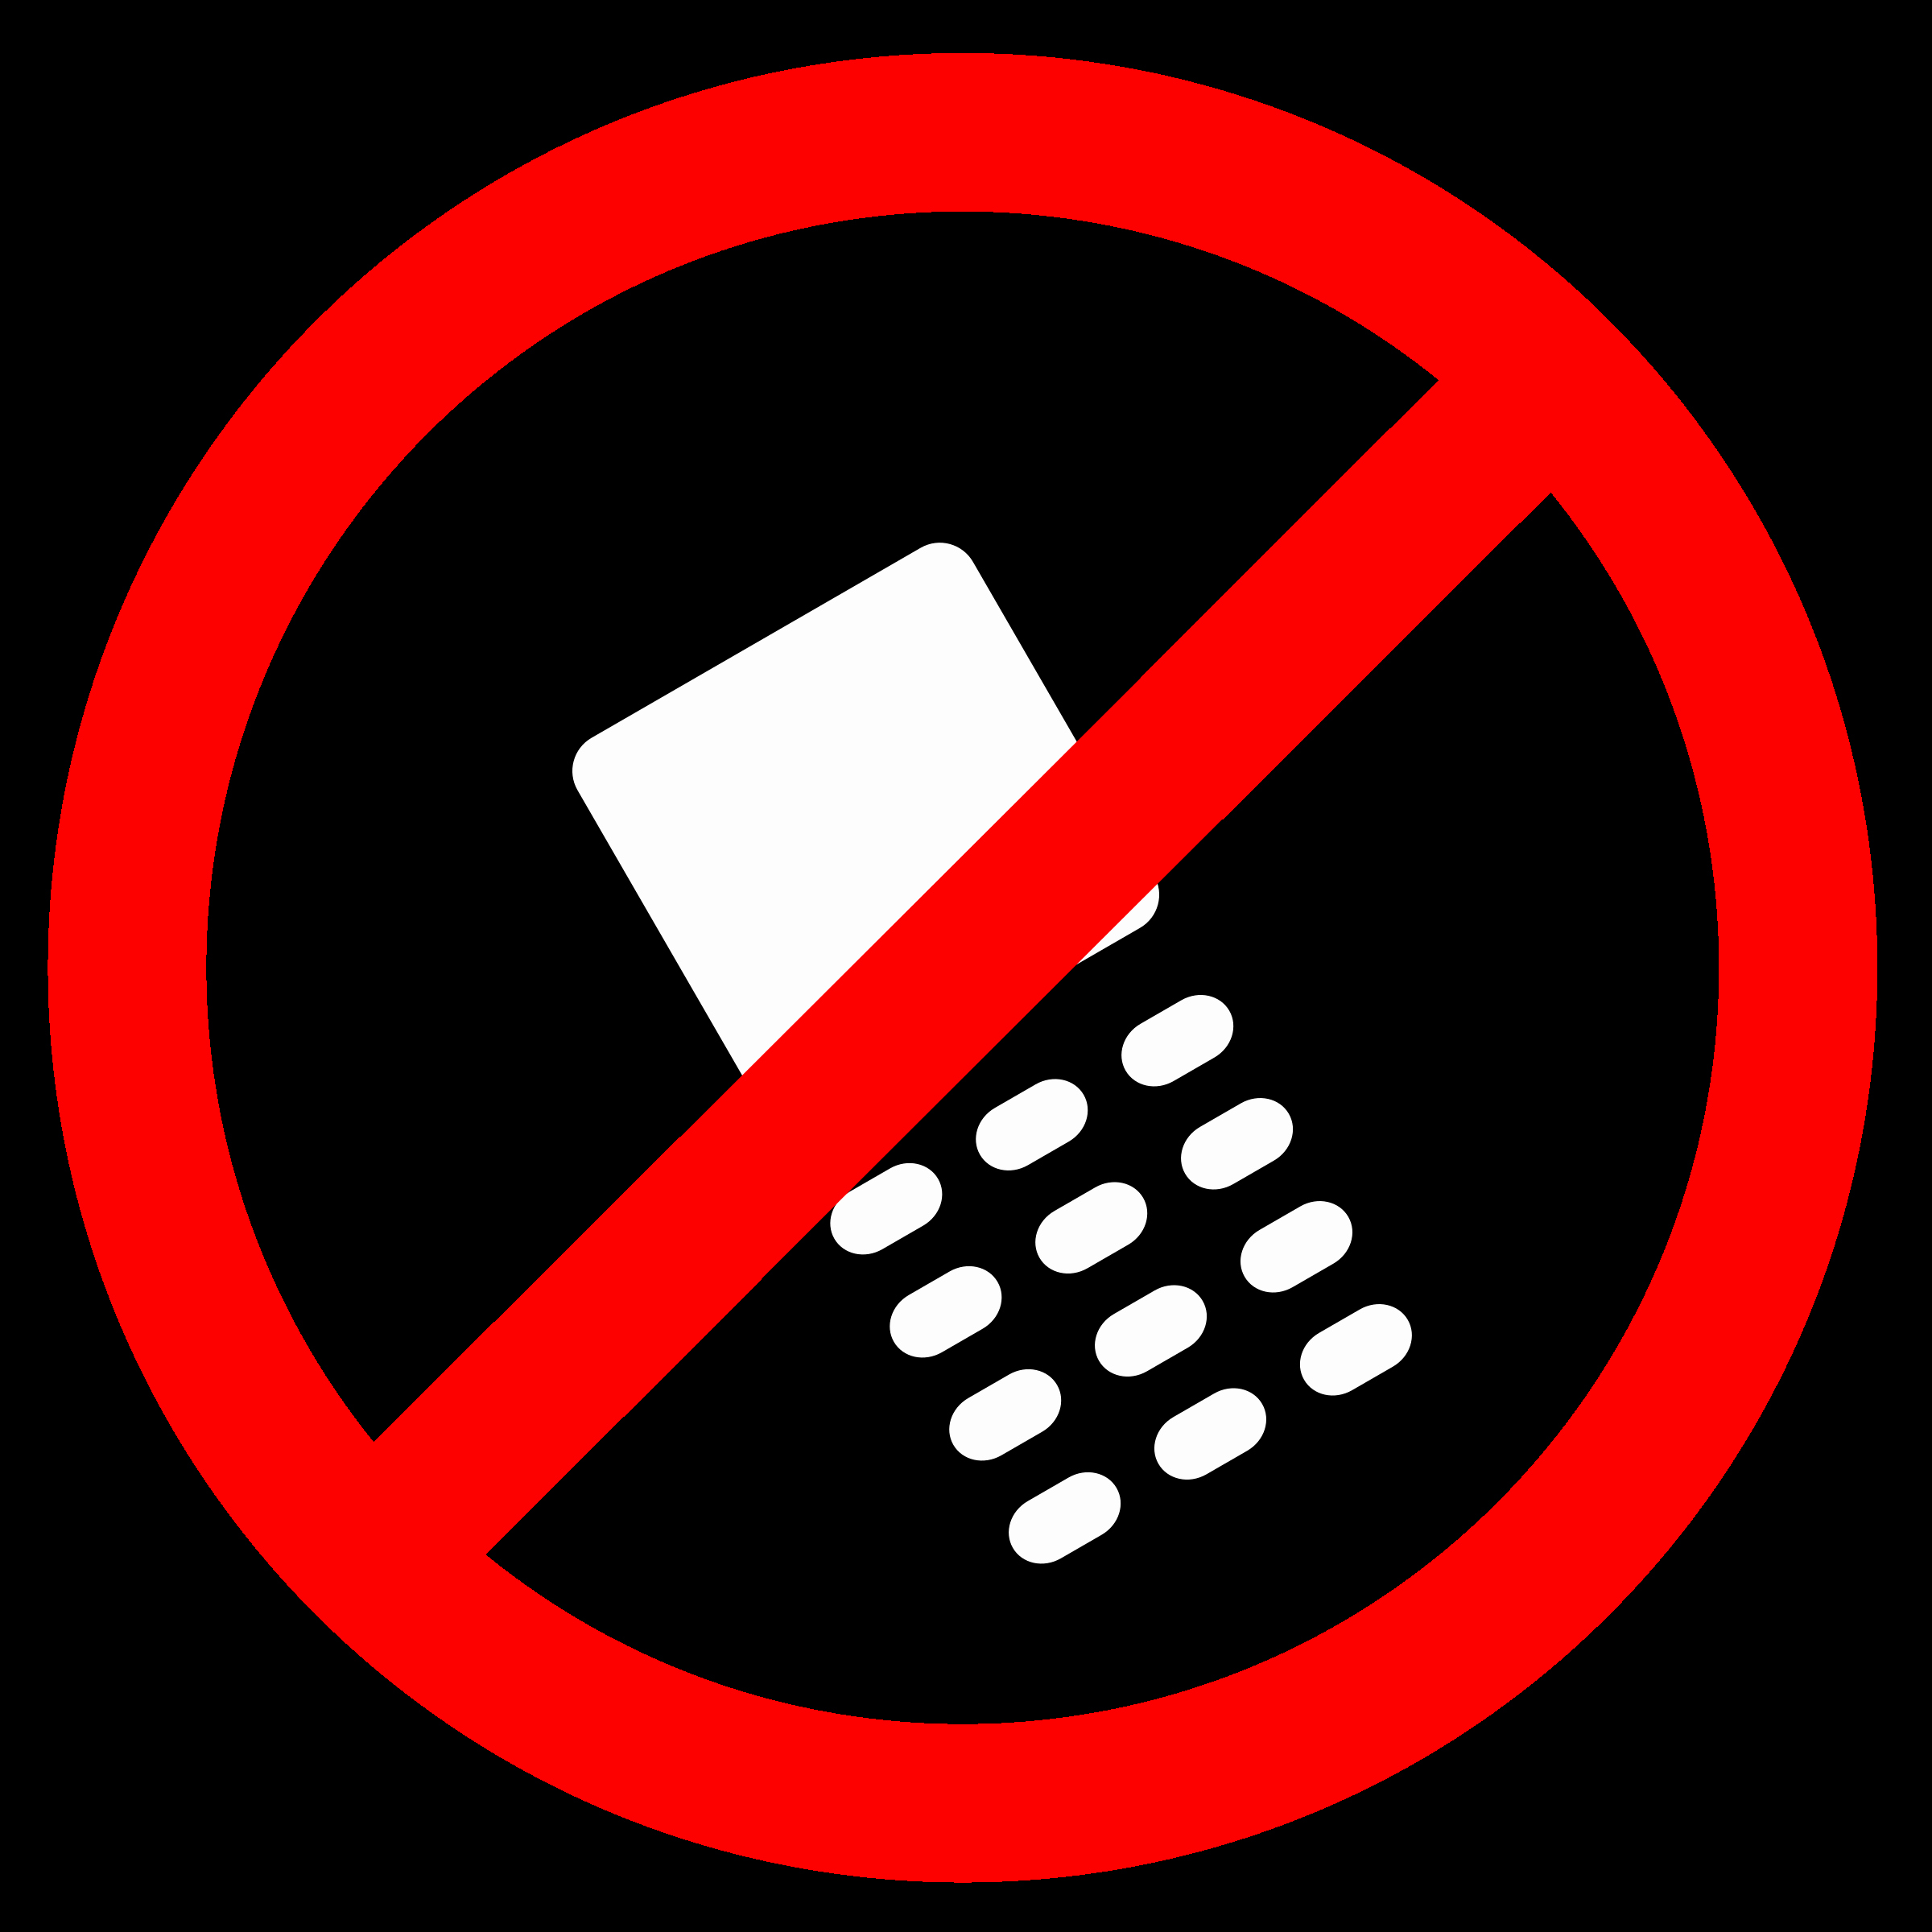 No Cell Phone Use Sign Luxury Clipart No Cell Phones Allowed